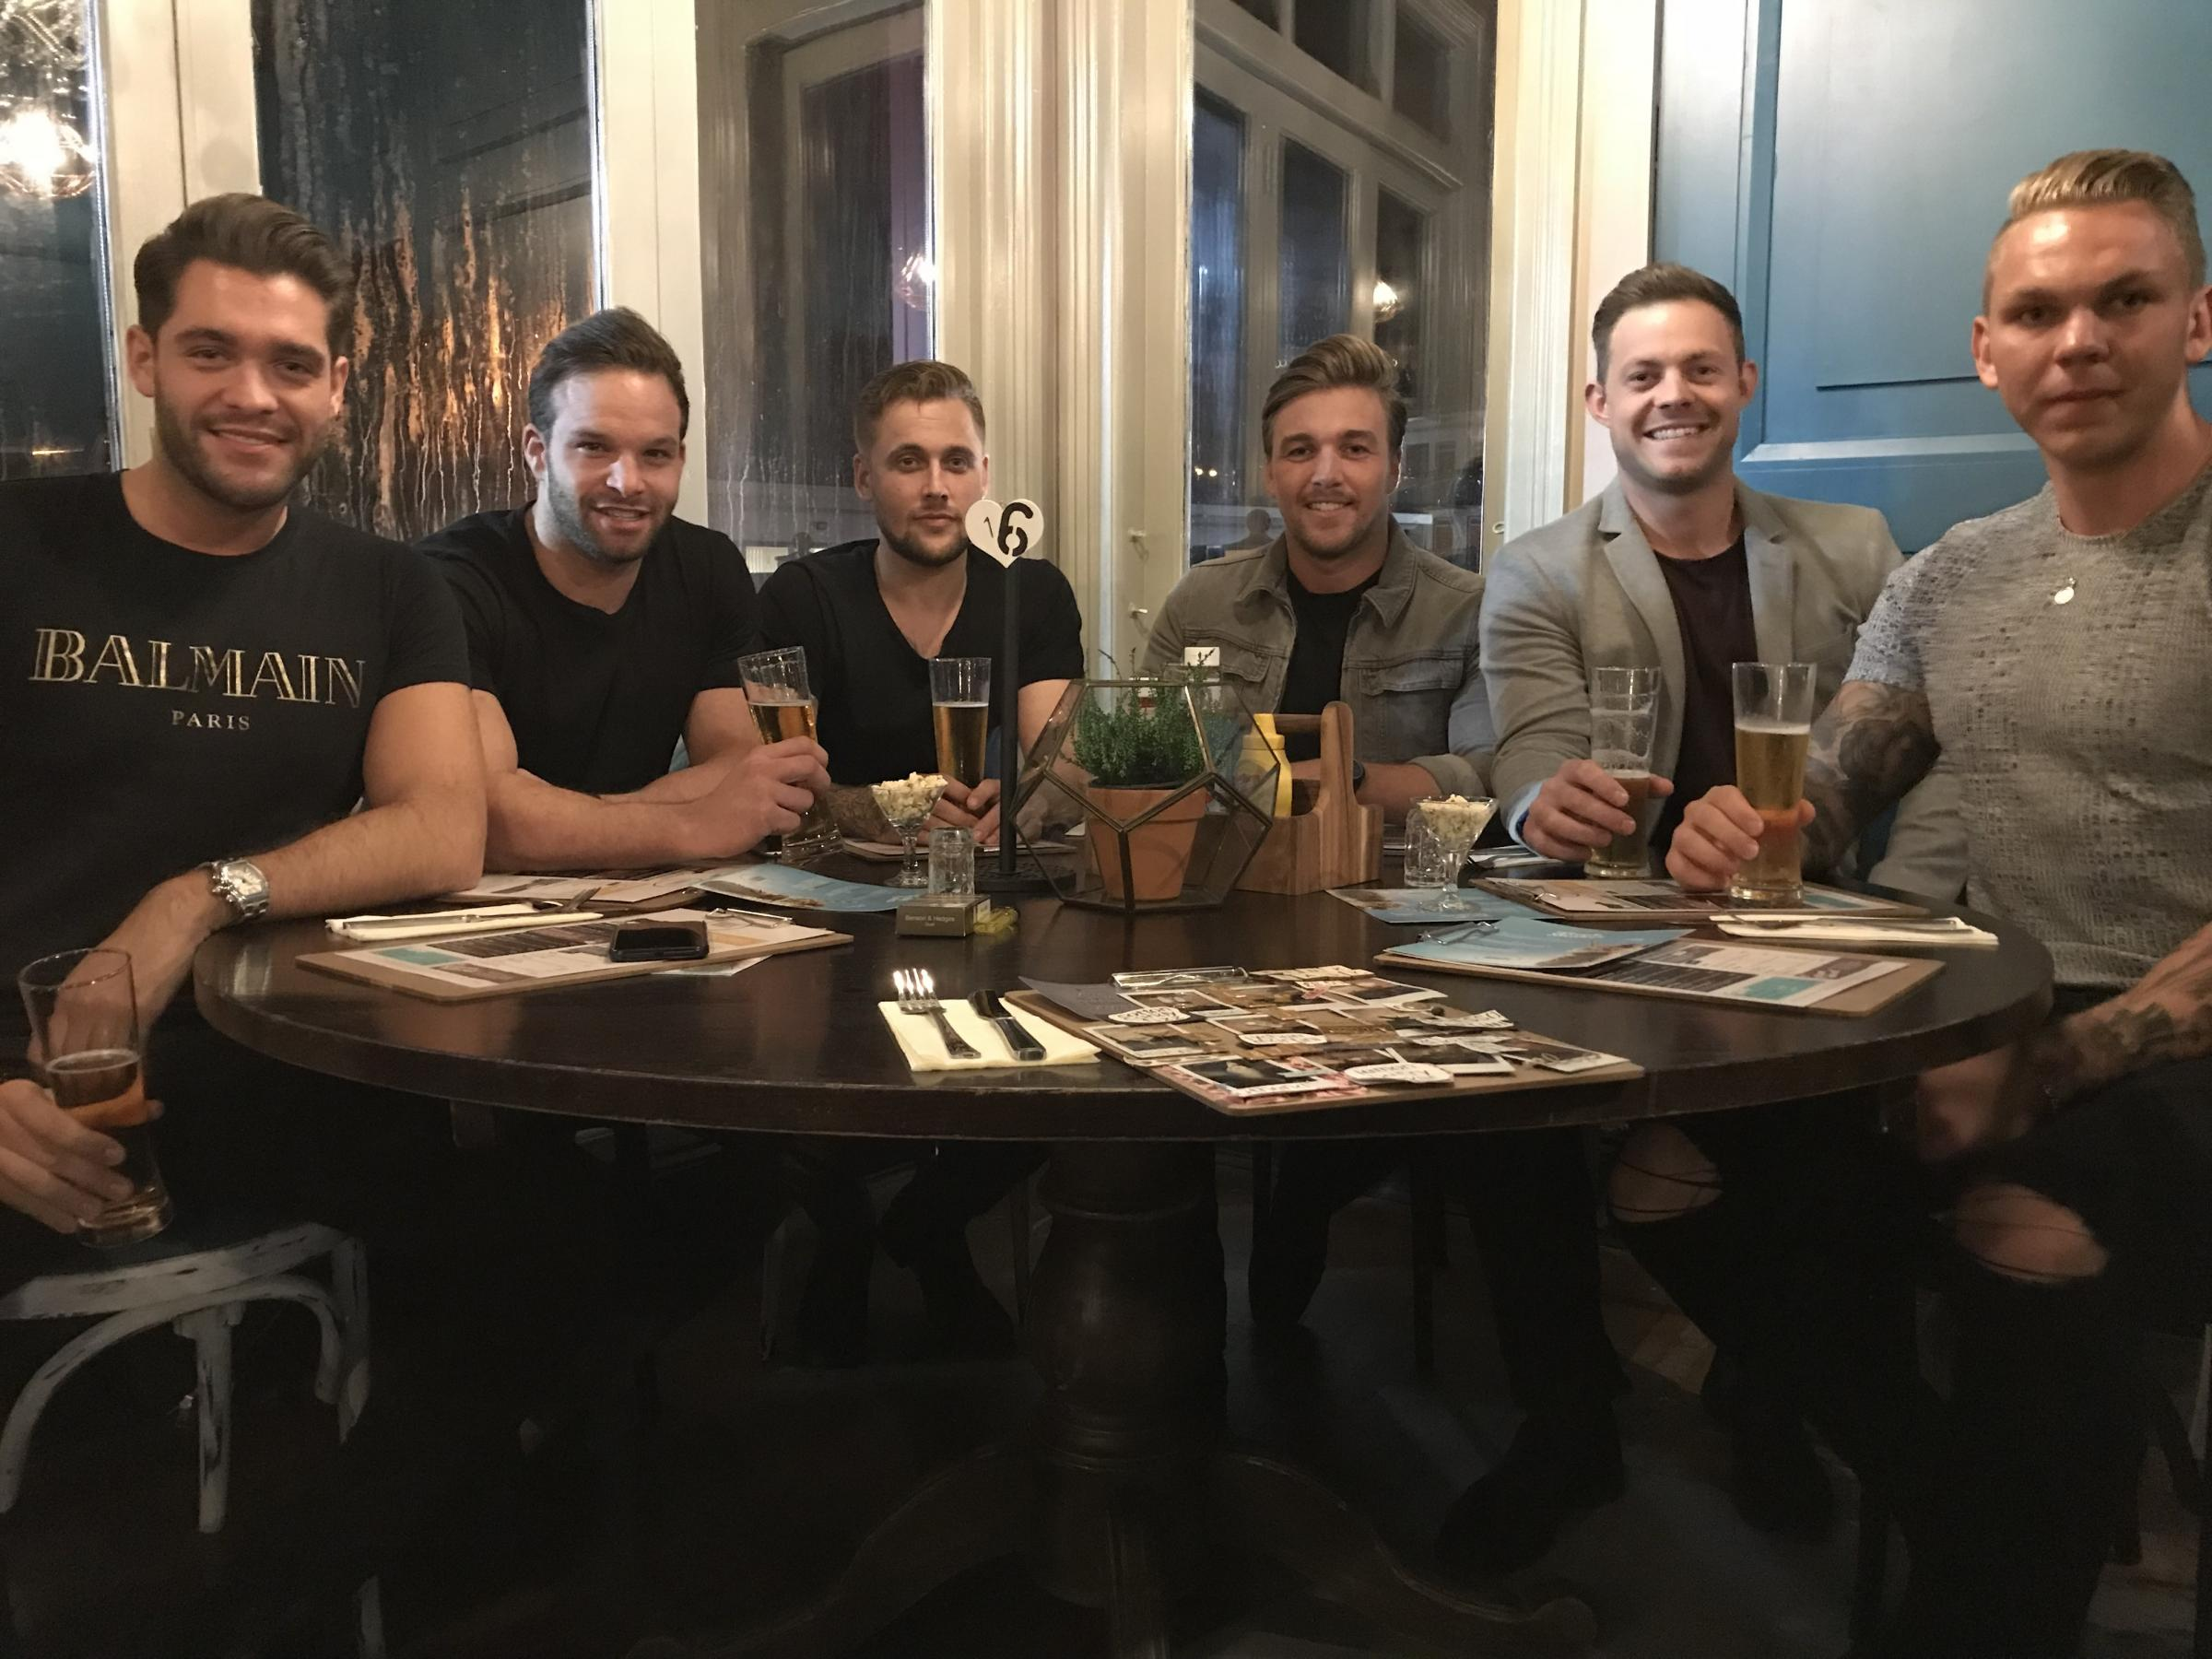 Jonny Mitchell from ITV's Love Island show (far left) is a frequent visitor of Burger and Bubbles